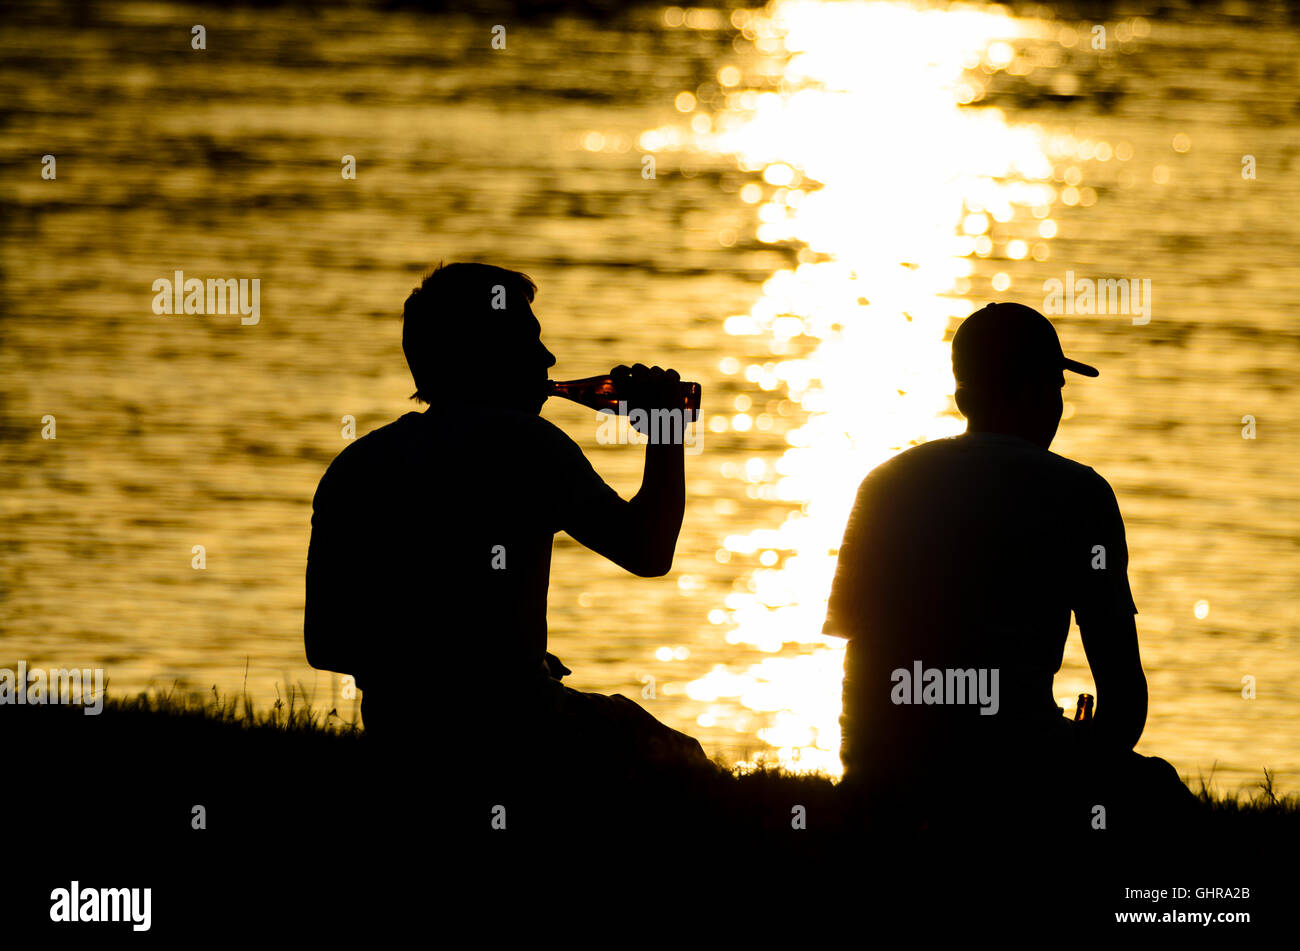 2 youthful teenager teenagers beer drinkers along the Danube River, setting sun, Austria, - Stock Image